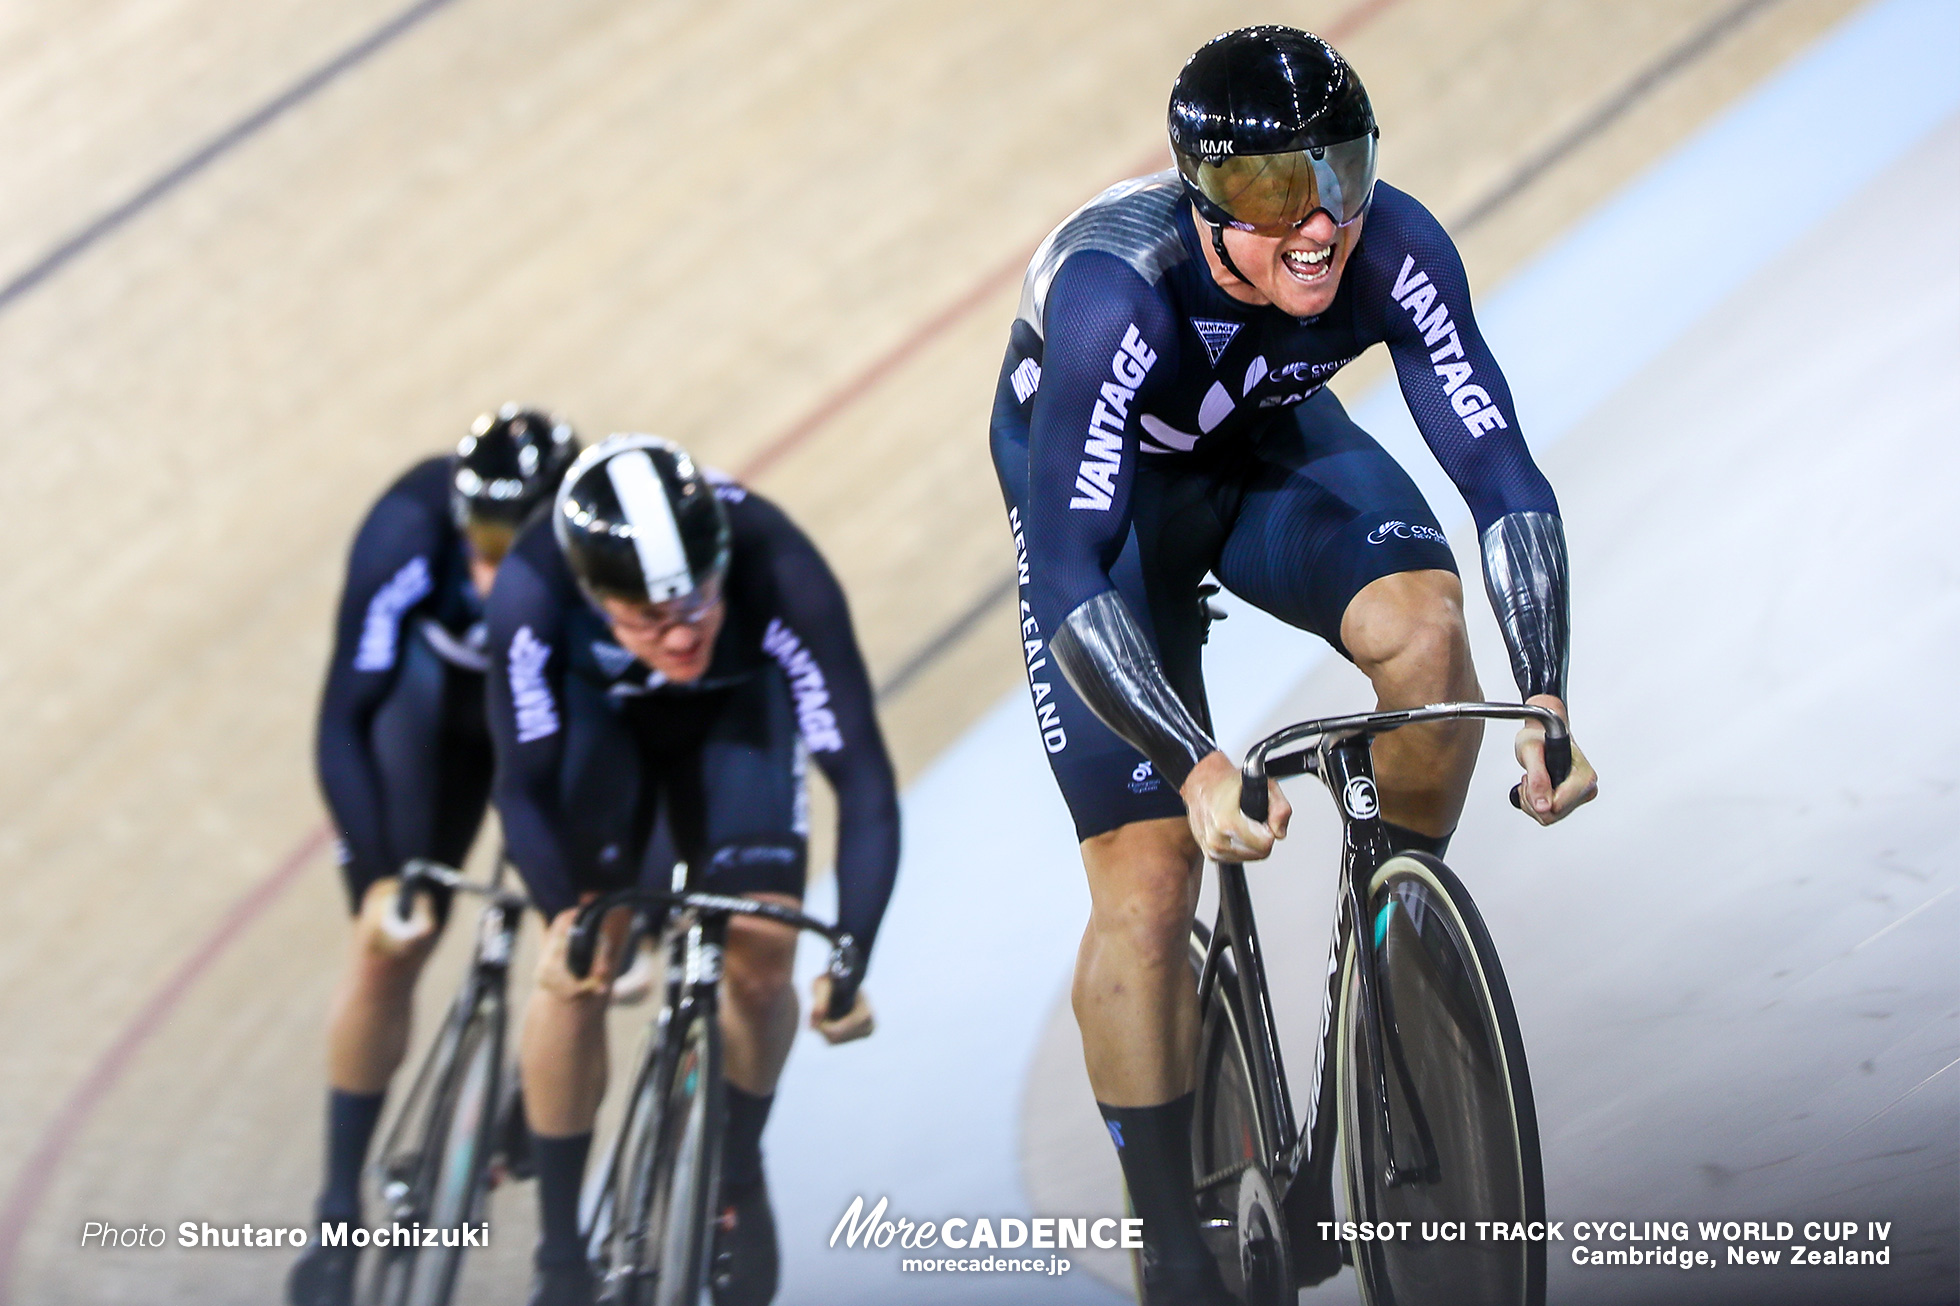 1st Round / Men's Team Sprint / TISSOT UCI TRACK CYCLING WORLD CUP IV, Cambridge, New Zealand